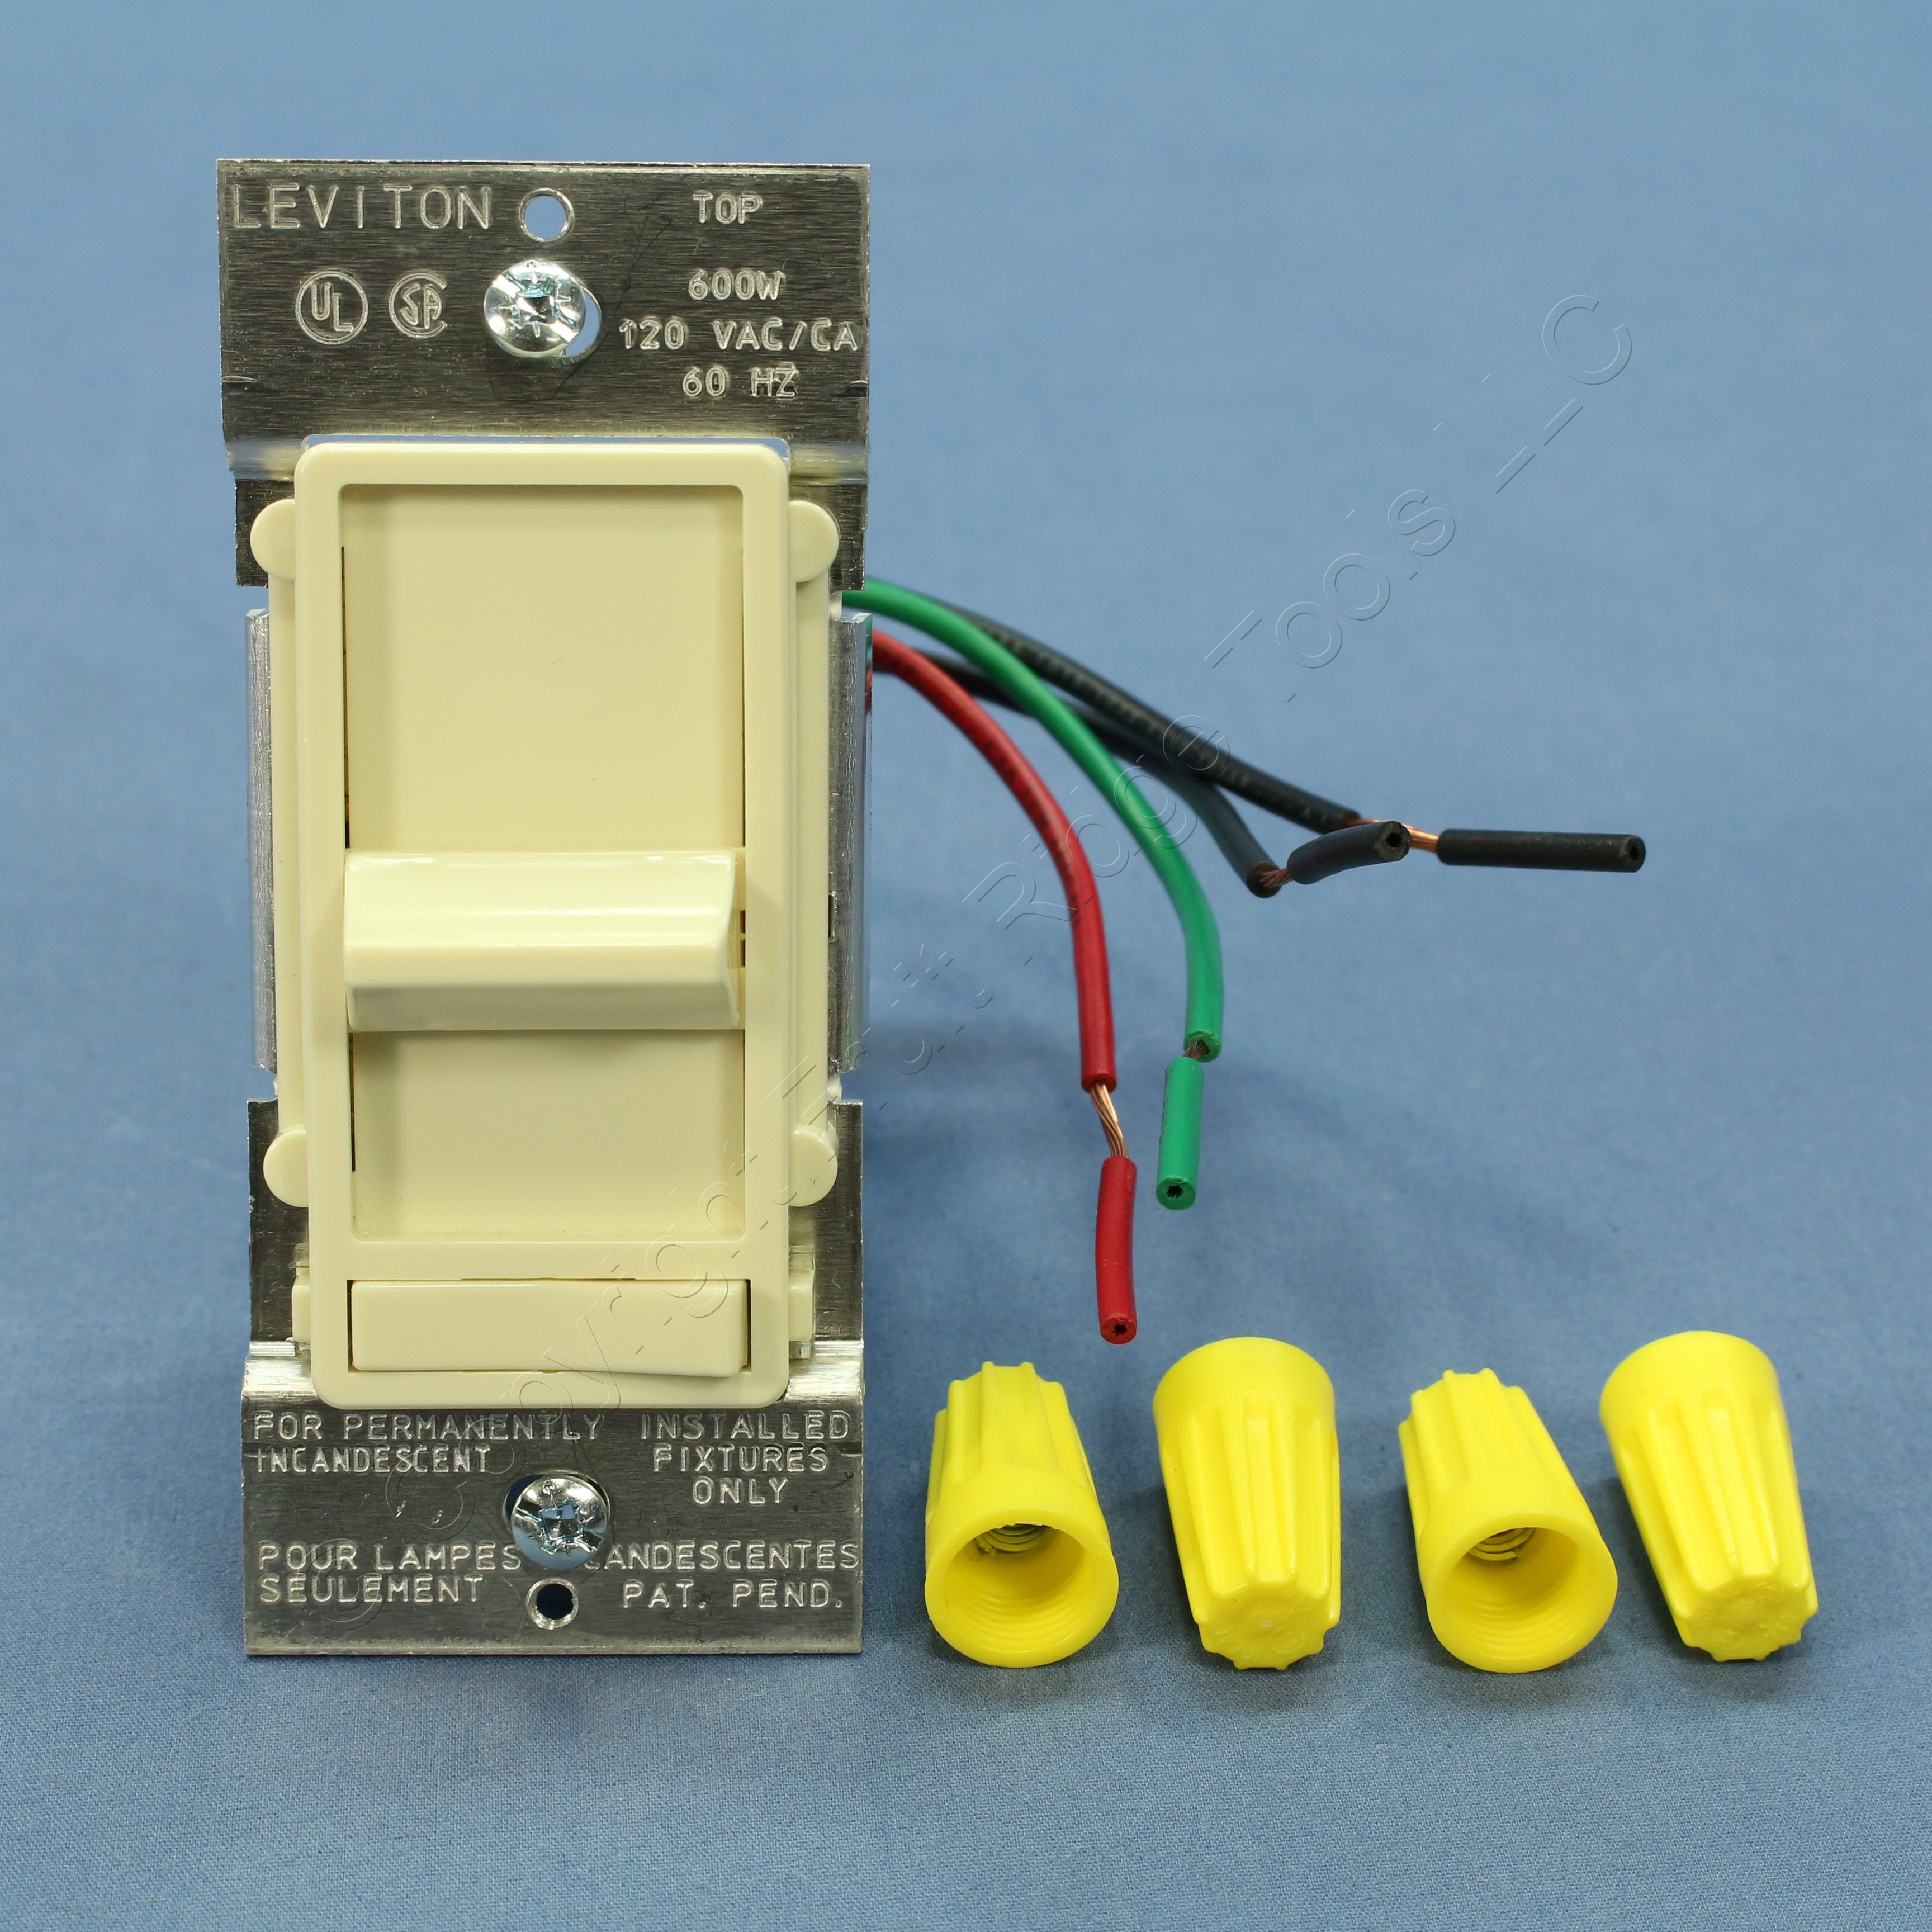 L6633 PA EA 2?resize\\\=665%2C665 slide dimmer wiring diagram wiring diagrams Leviton LED Dimmer Switch at alyssarenee.co